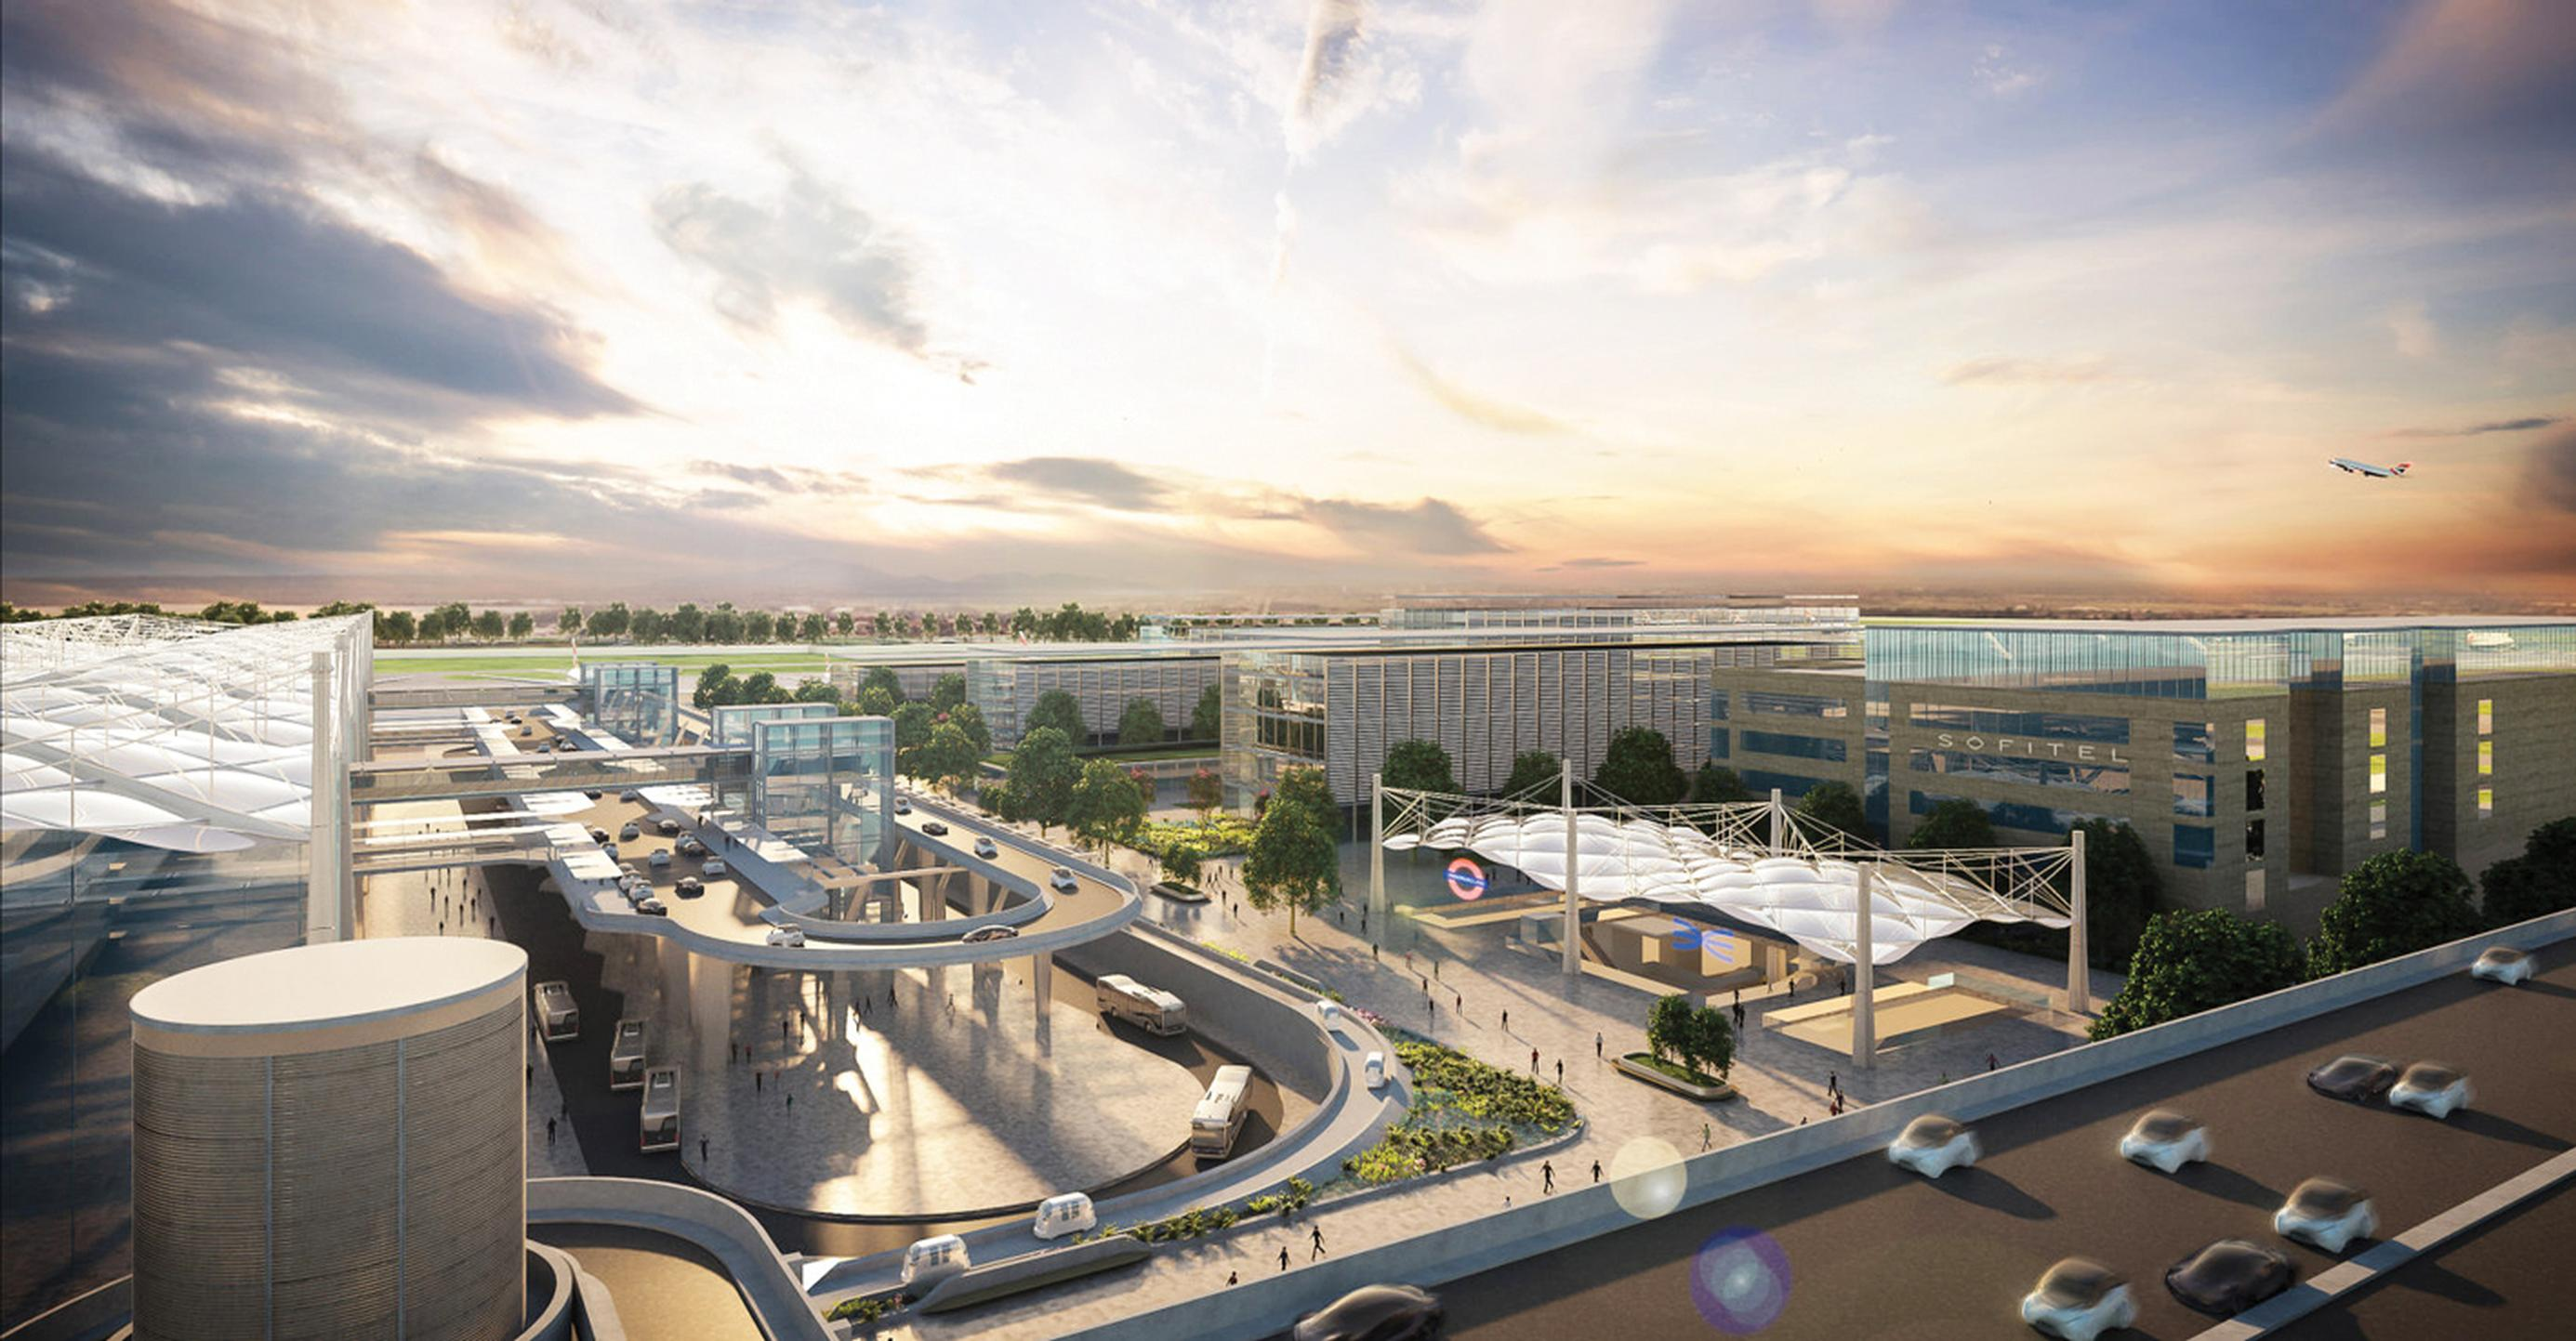 Media opinion is divided as to whether either, or both, of the HS2 project and the expansion of Heathrow Airport will get the final, definitive go-ahead in the coming weeks